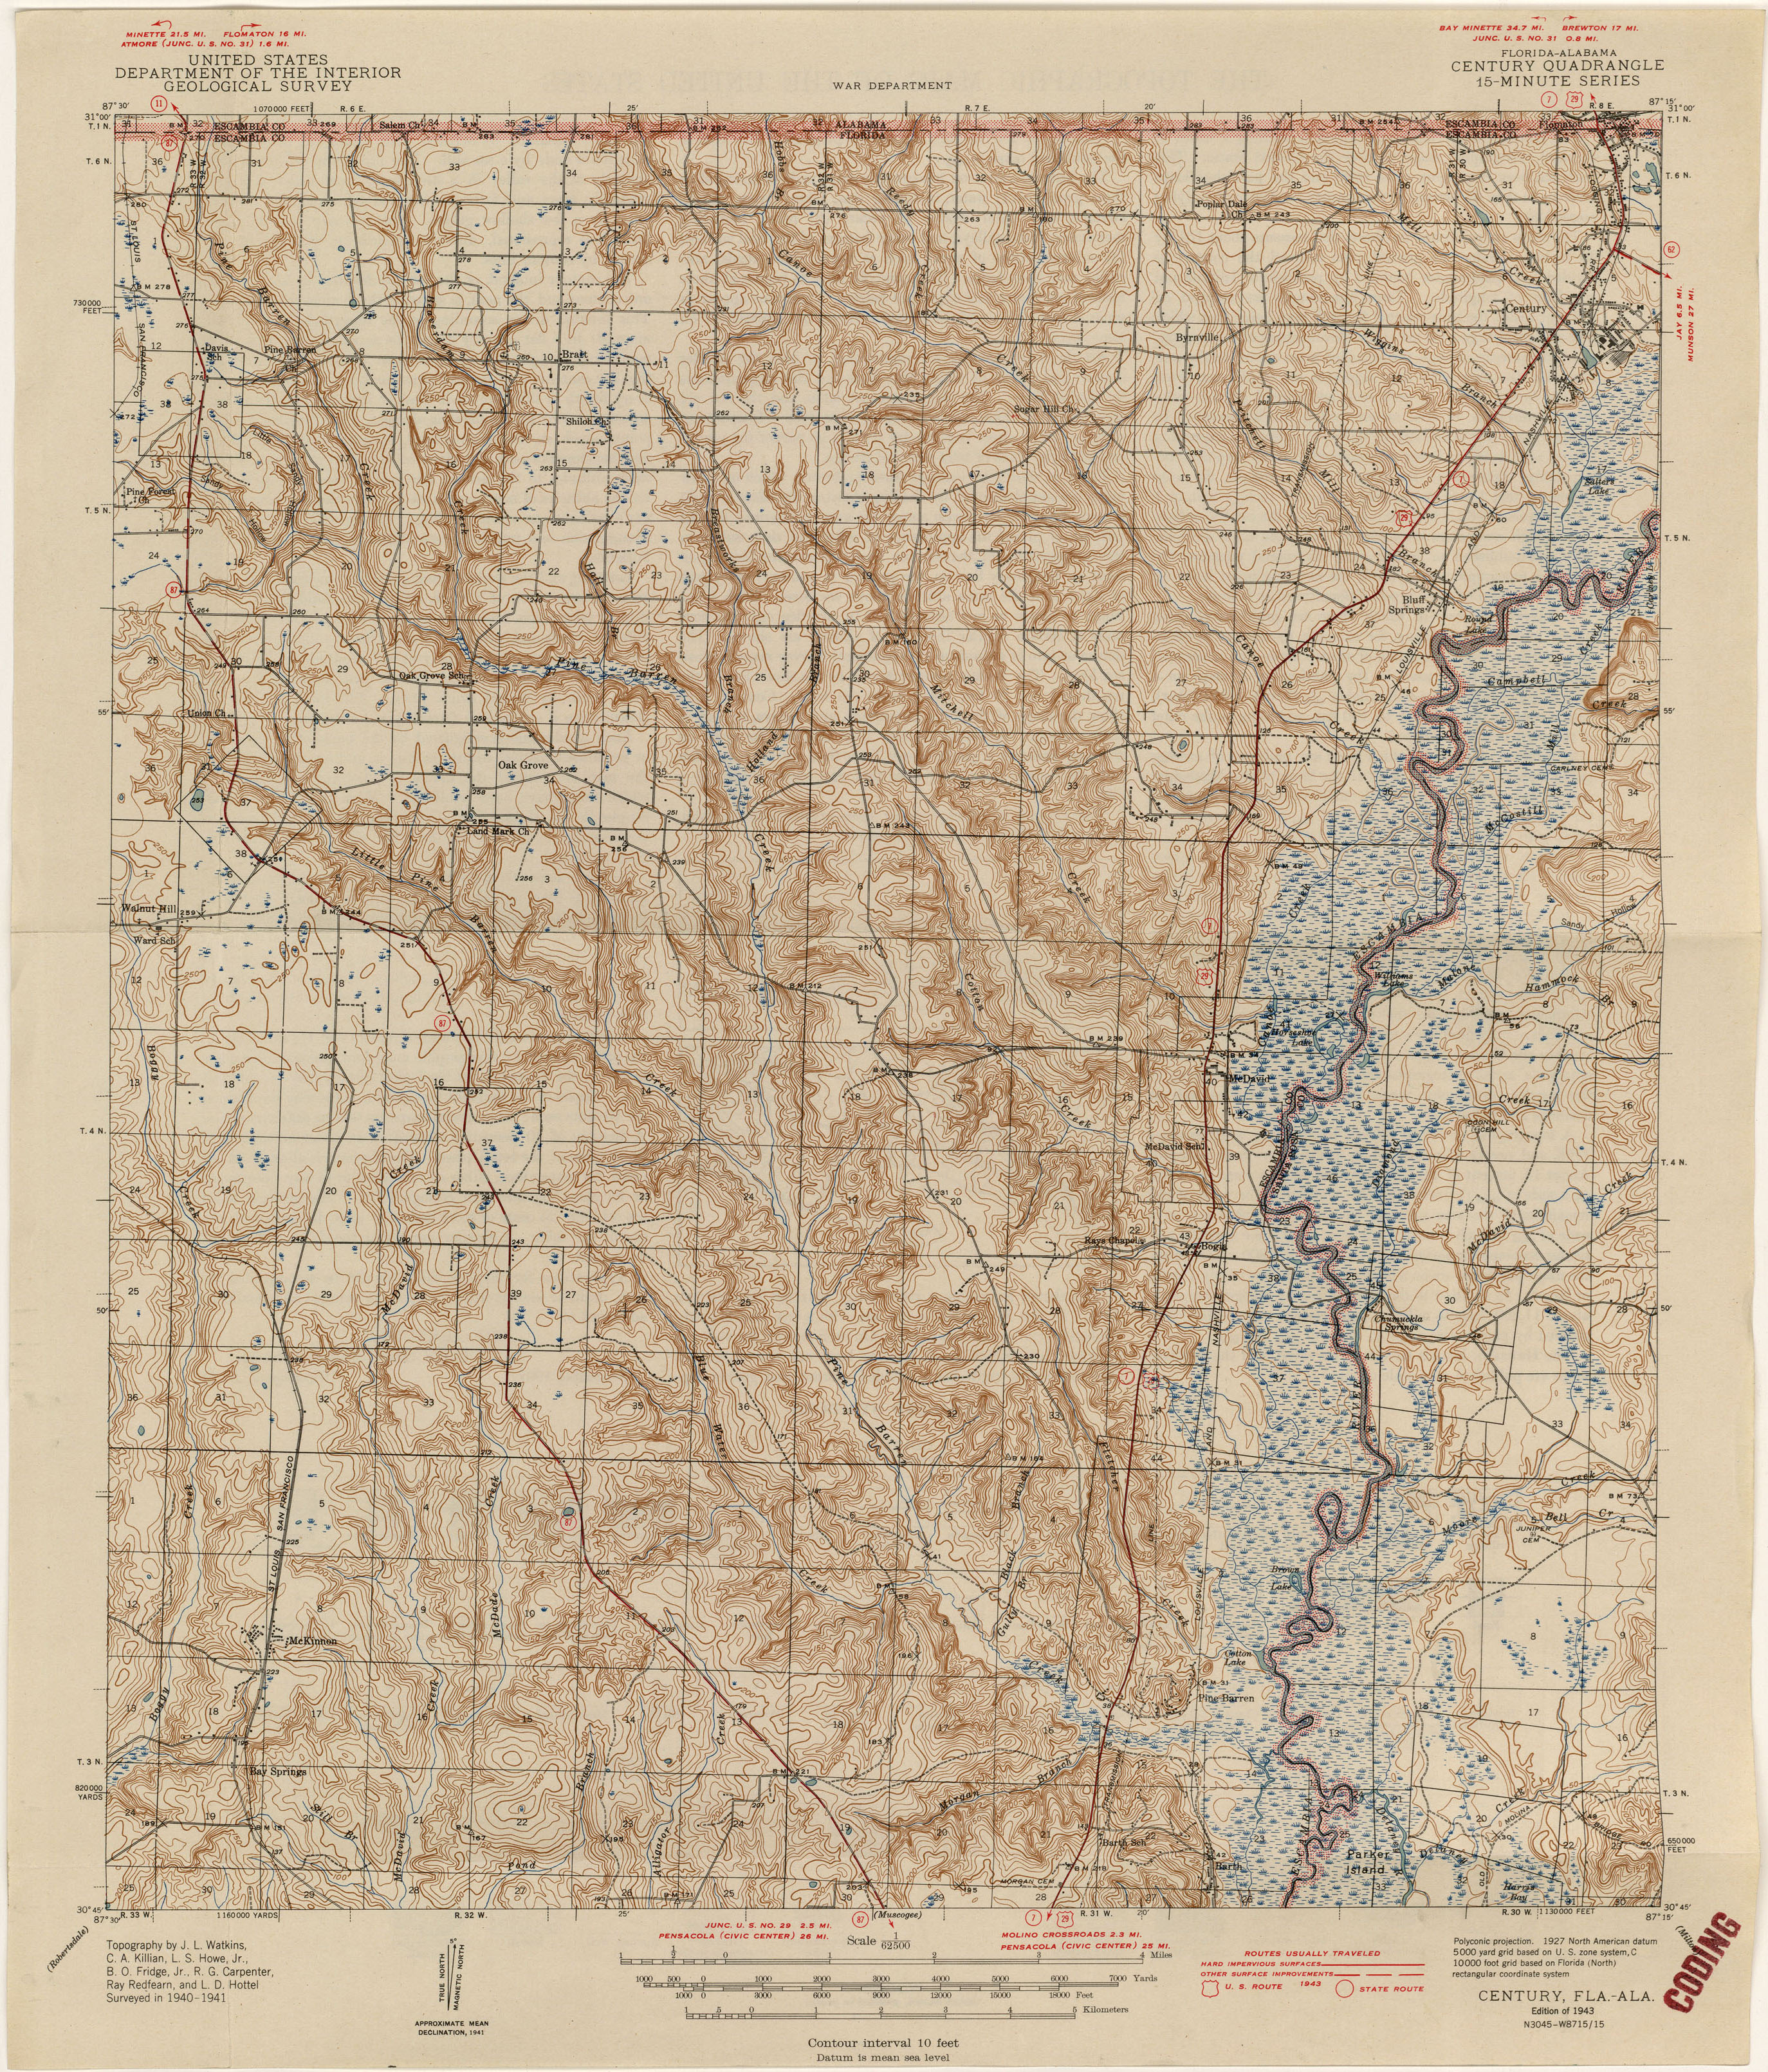 Topography Map Florida.Florida Historical Topographic Maps Perry Castaneda Map Collection